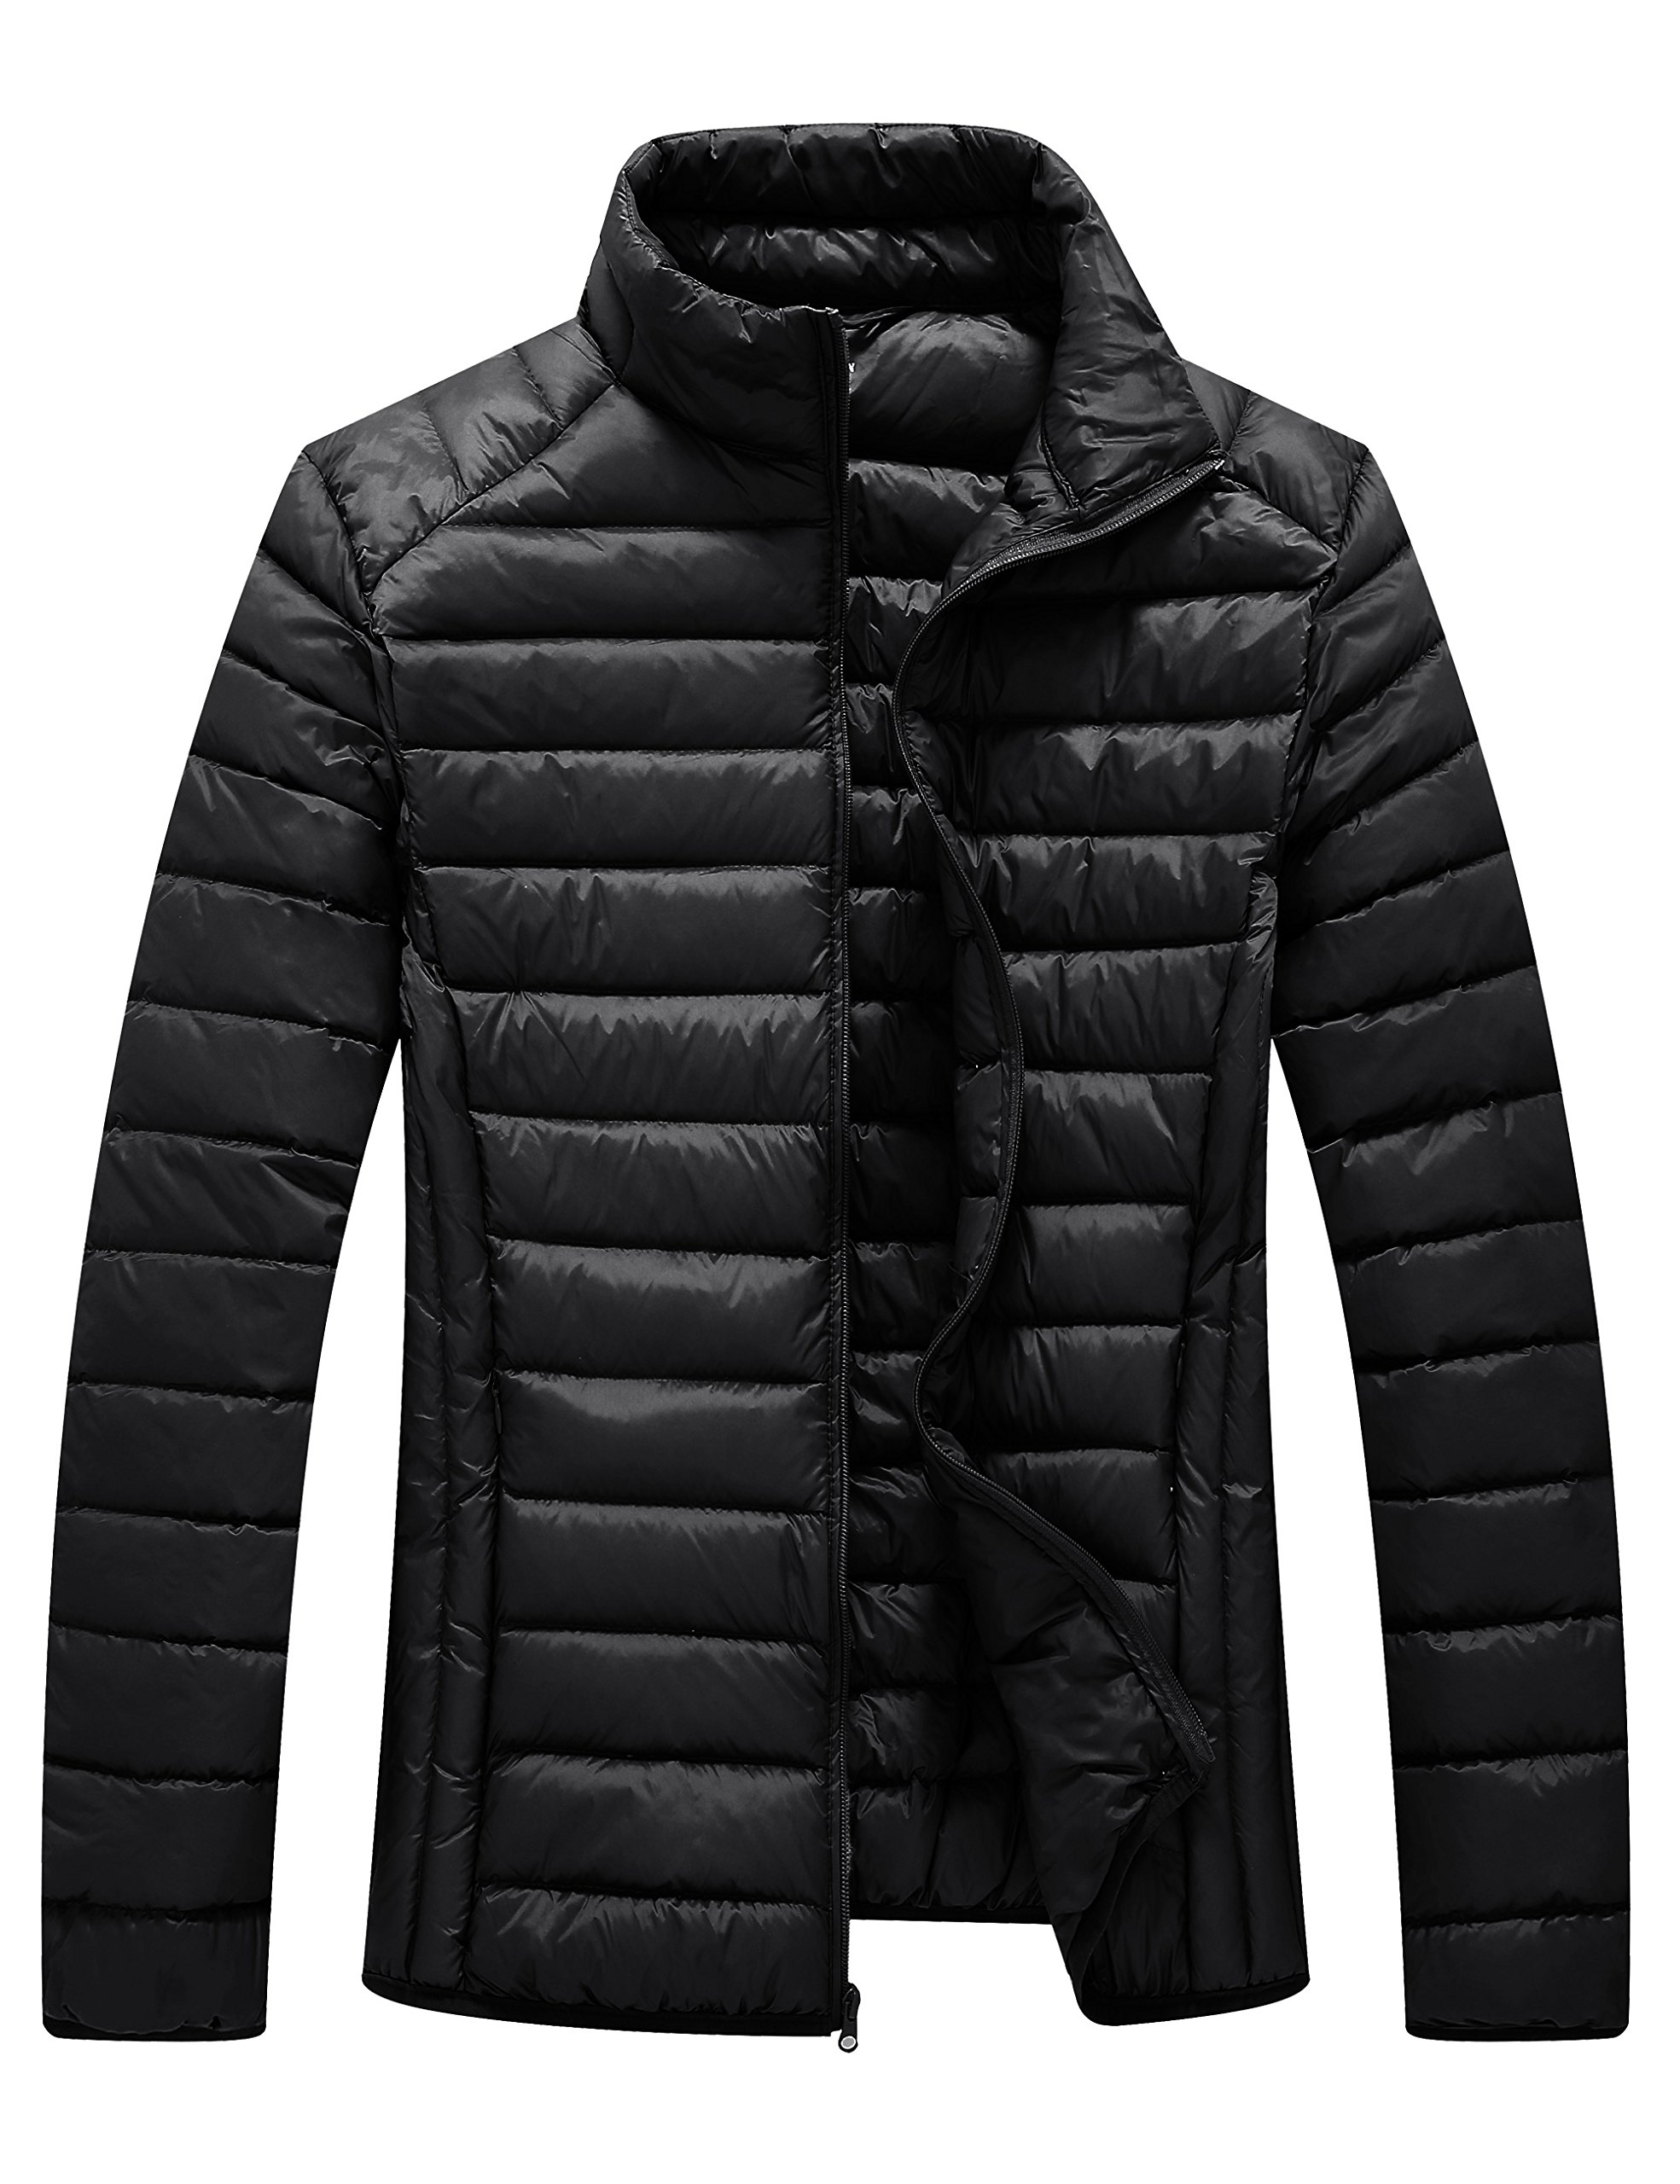 WenVen Men's Wearable Packable Down Jacket Light Weight(Black,US Size S)